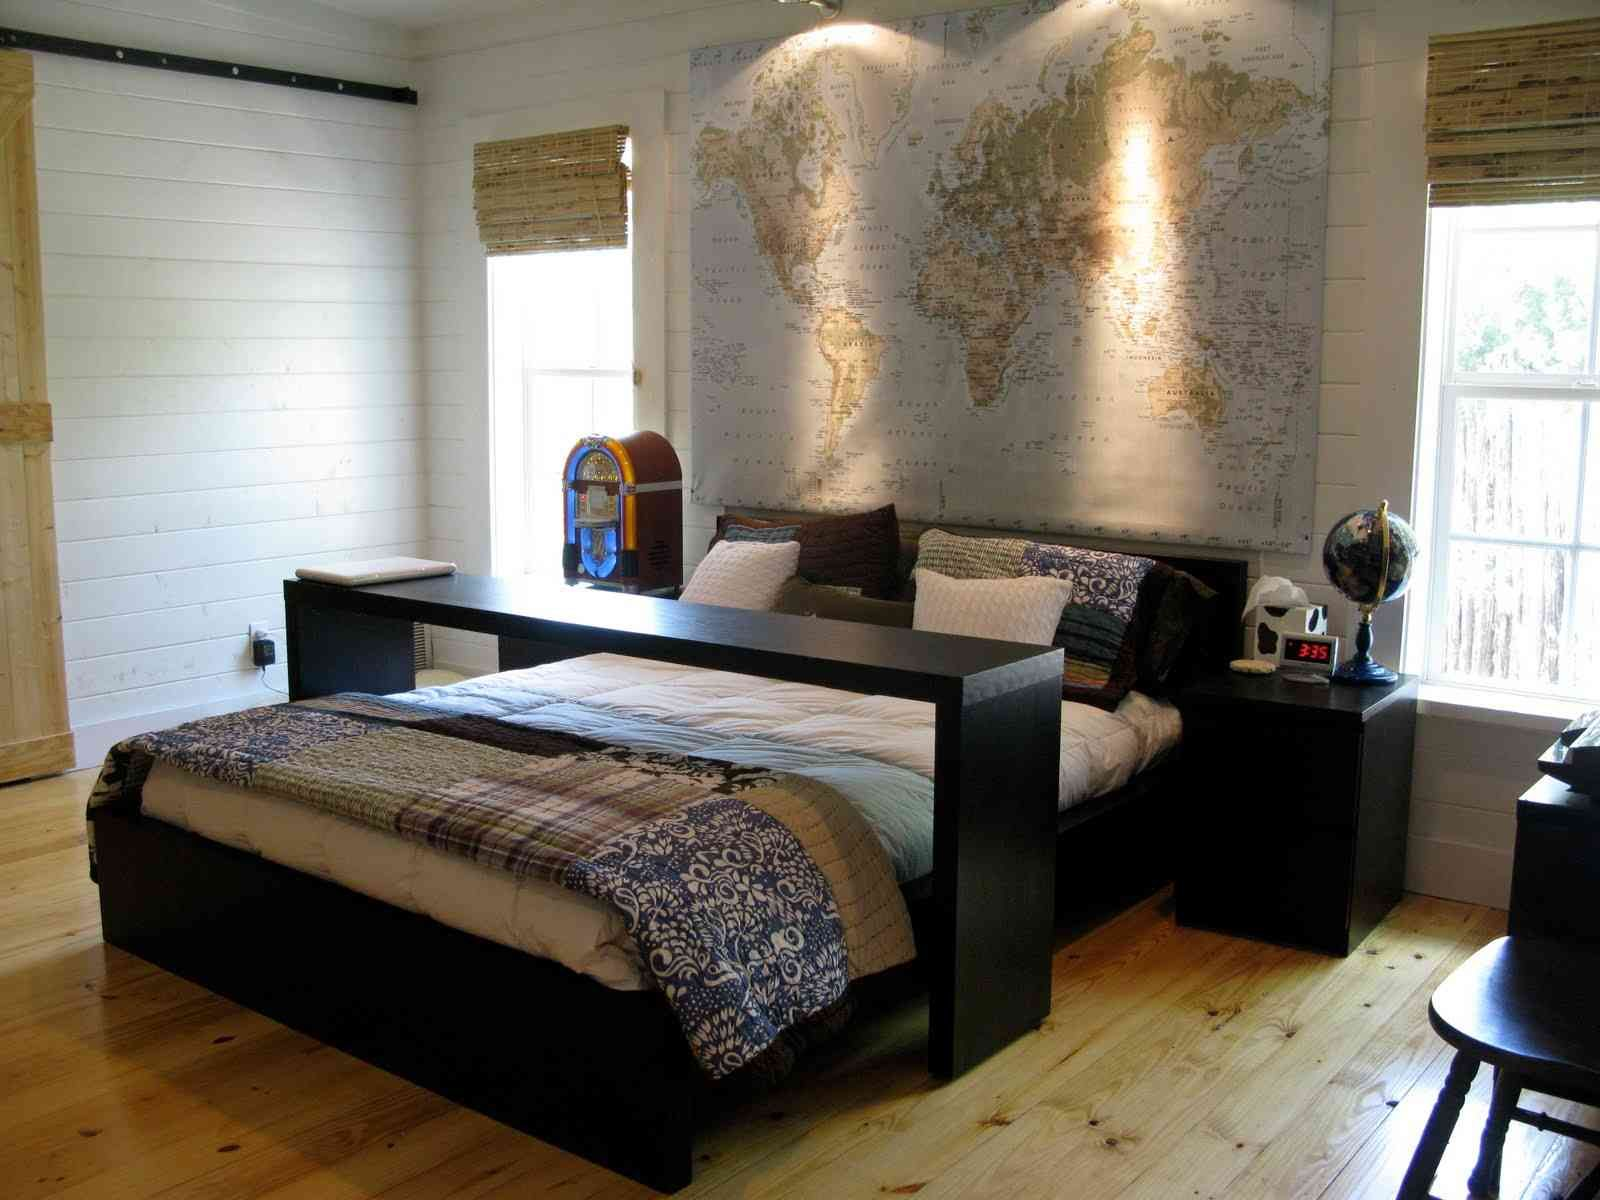 126 best images about ikea bedrooms on pinterest ikea ikea bedroom furniture and bedroom designs - Bedroom Idea Ikea